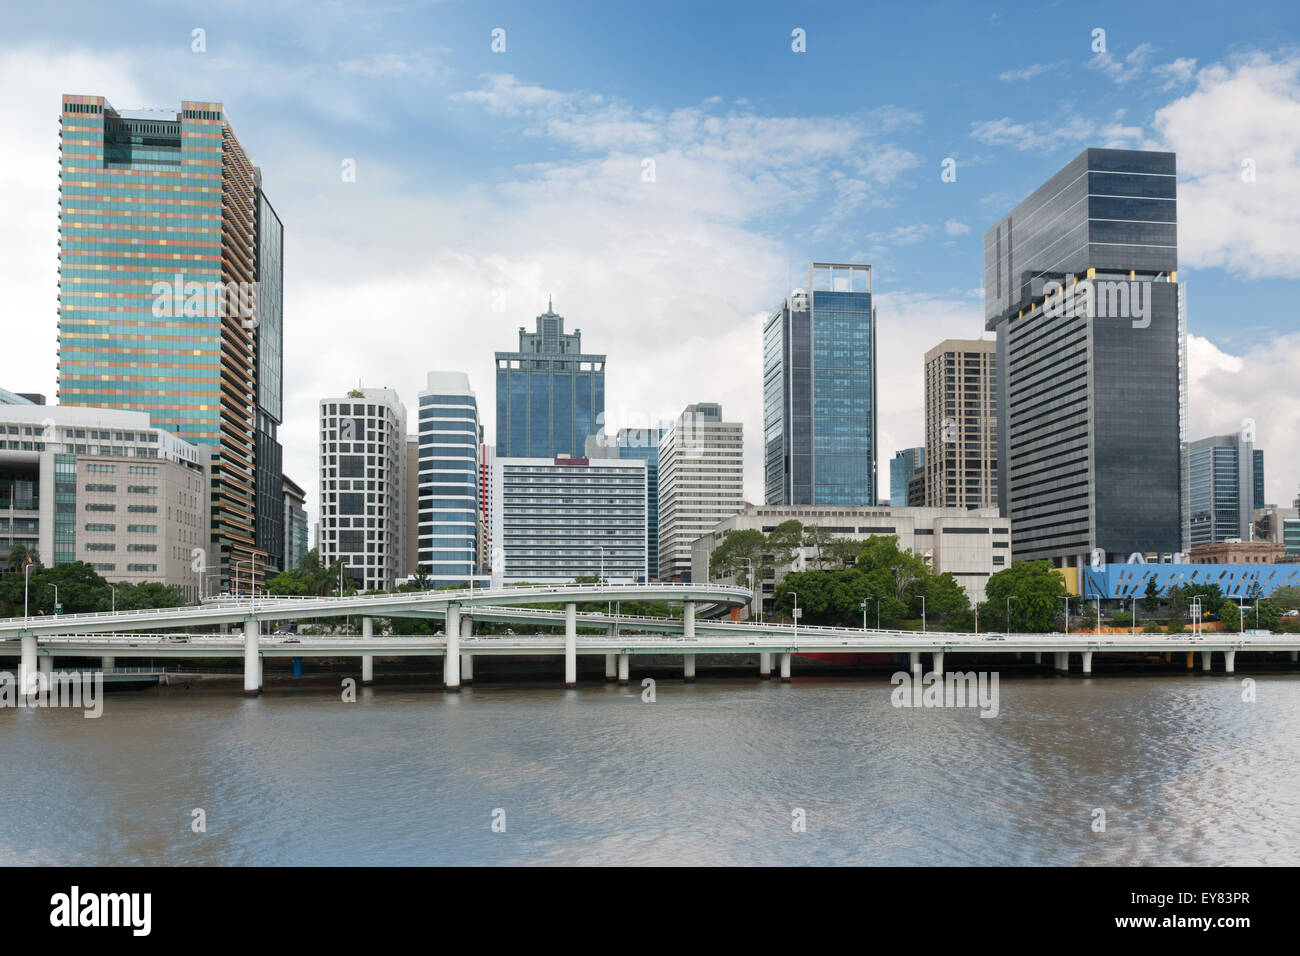 Urban landscape of modern buildings and street by Brisbane River - Stock Image